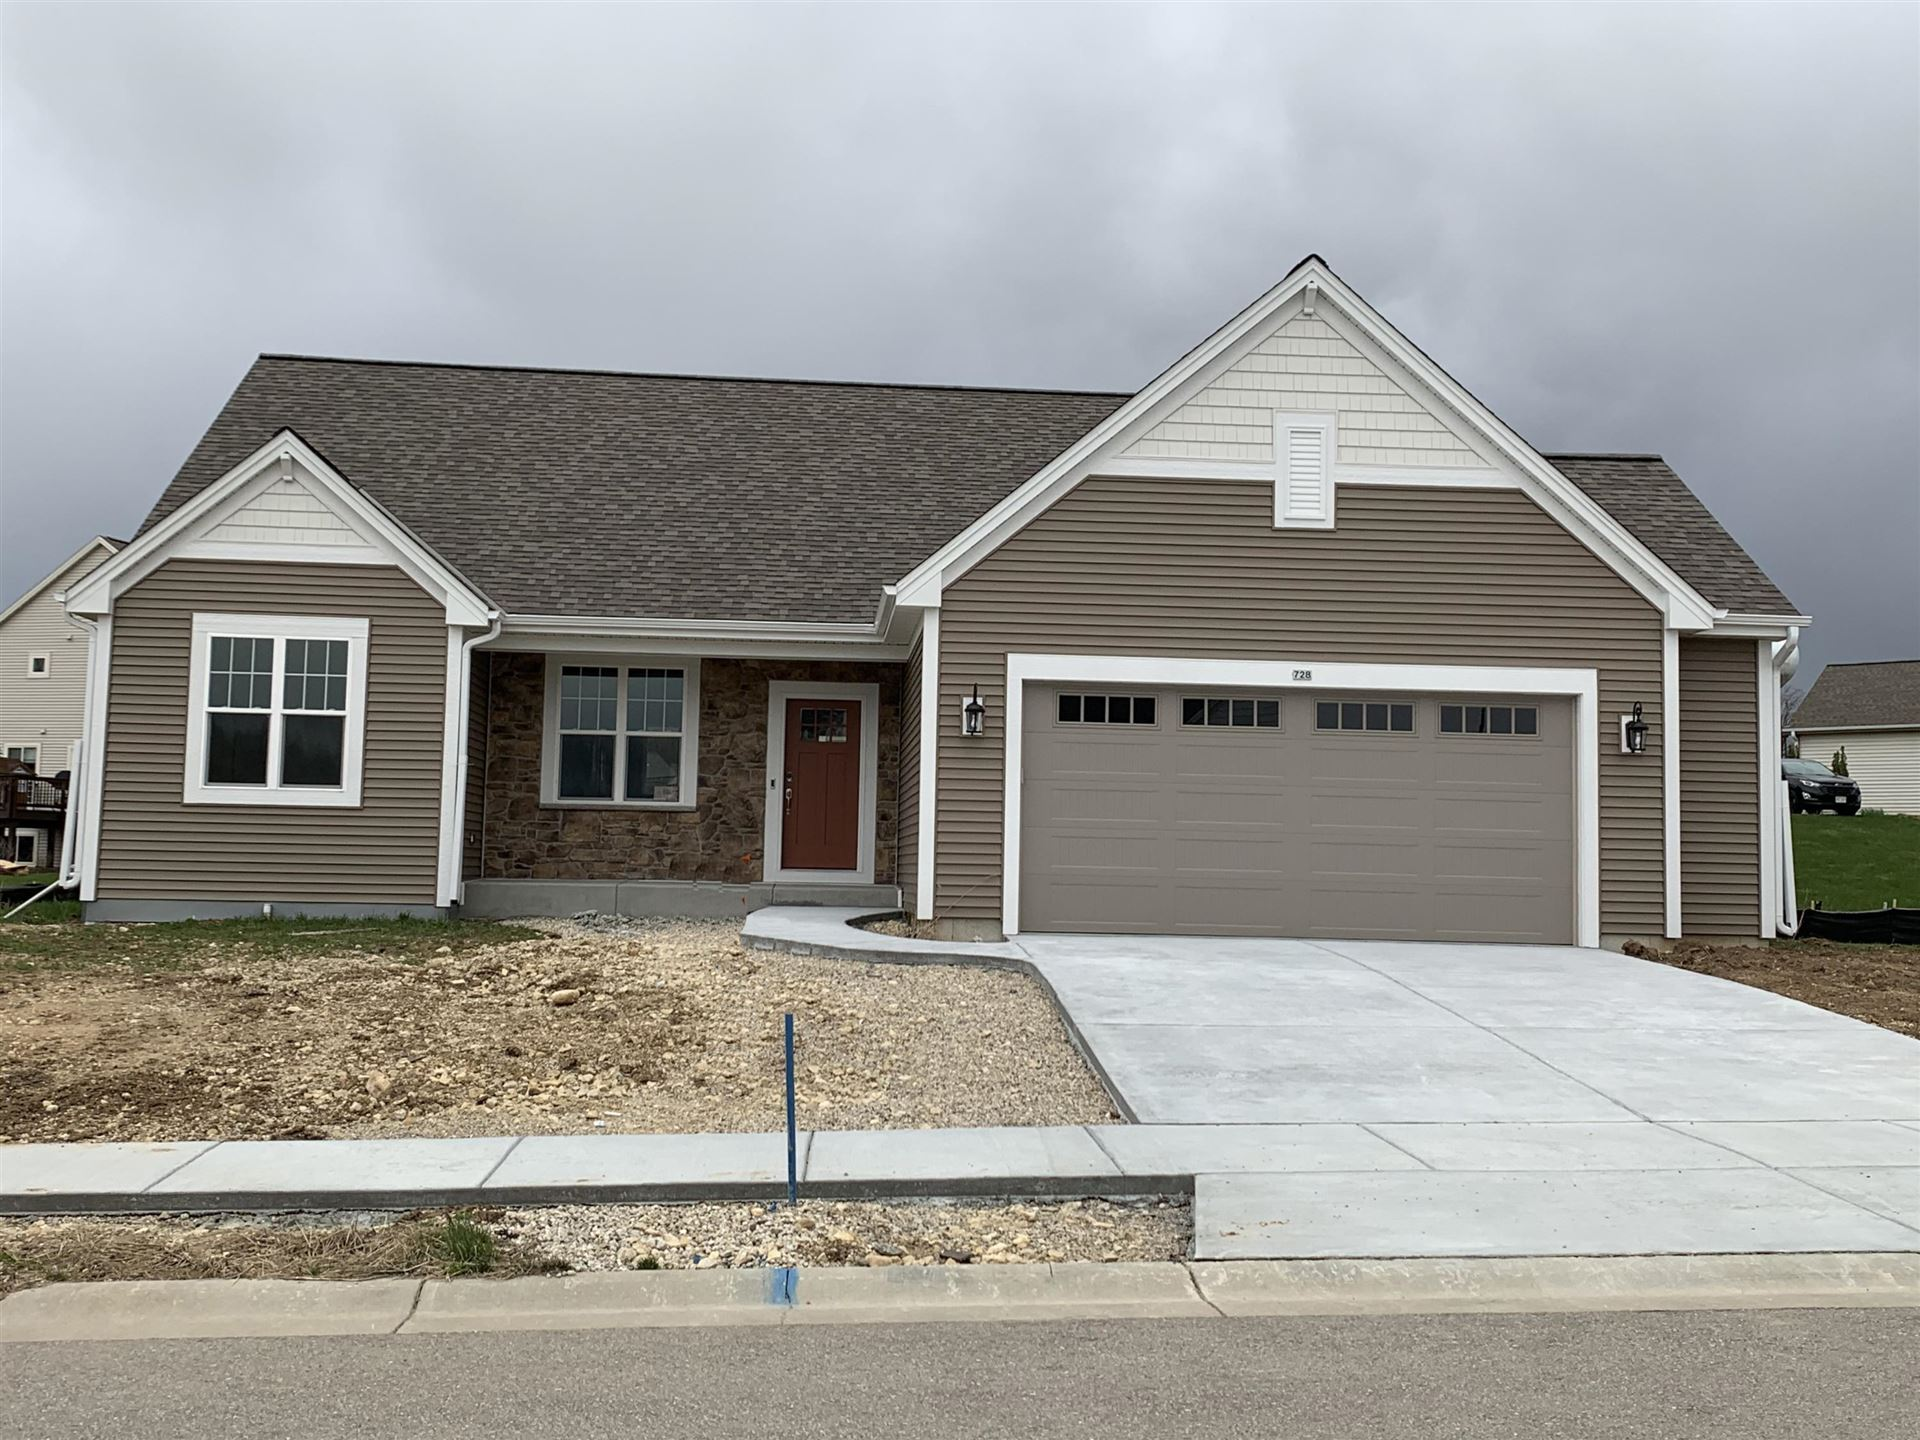 728 Autumn Ridge Ln, Hartford, WI 53027 - #: 1682910